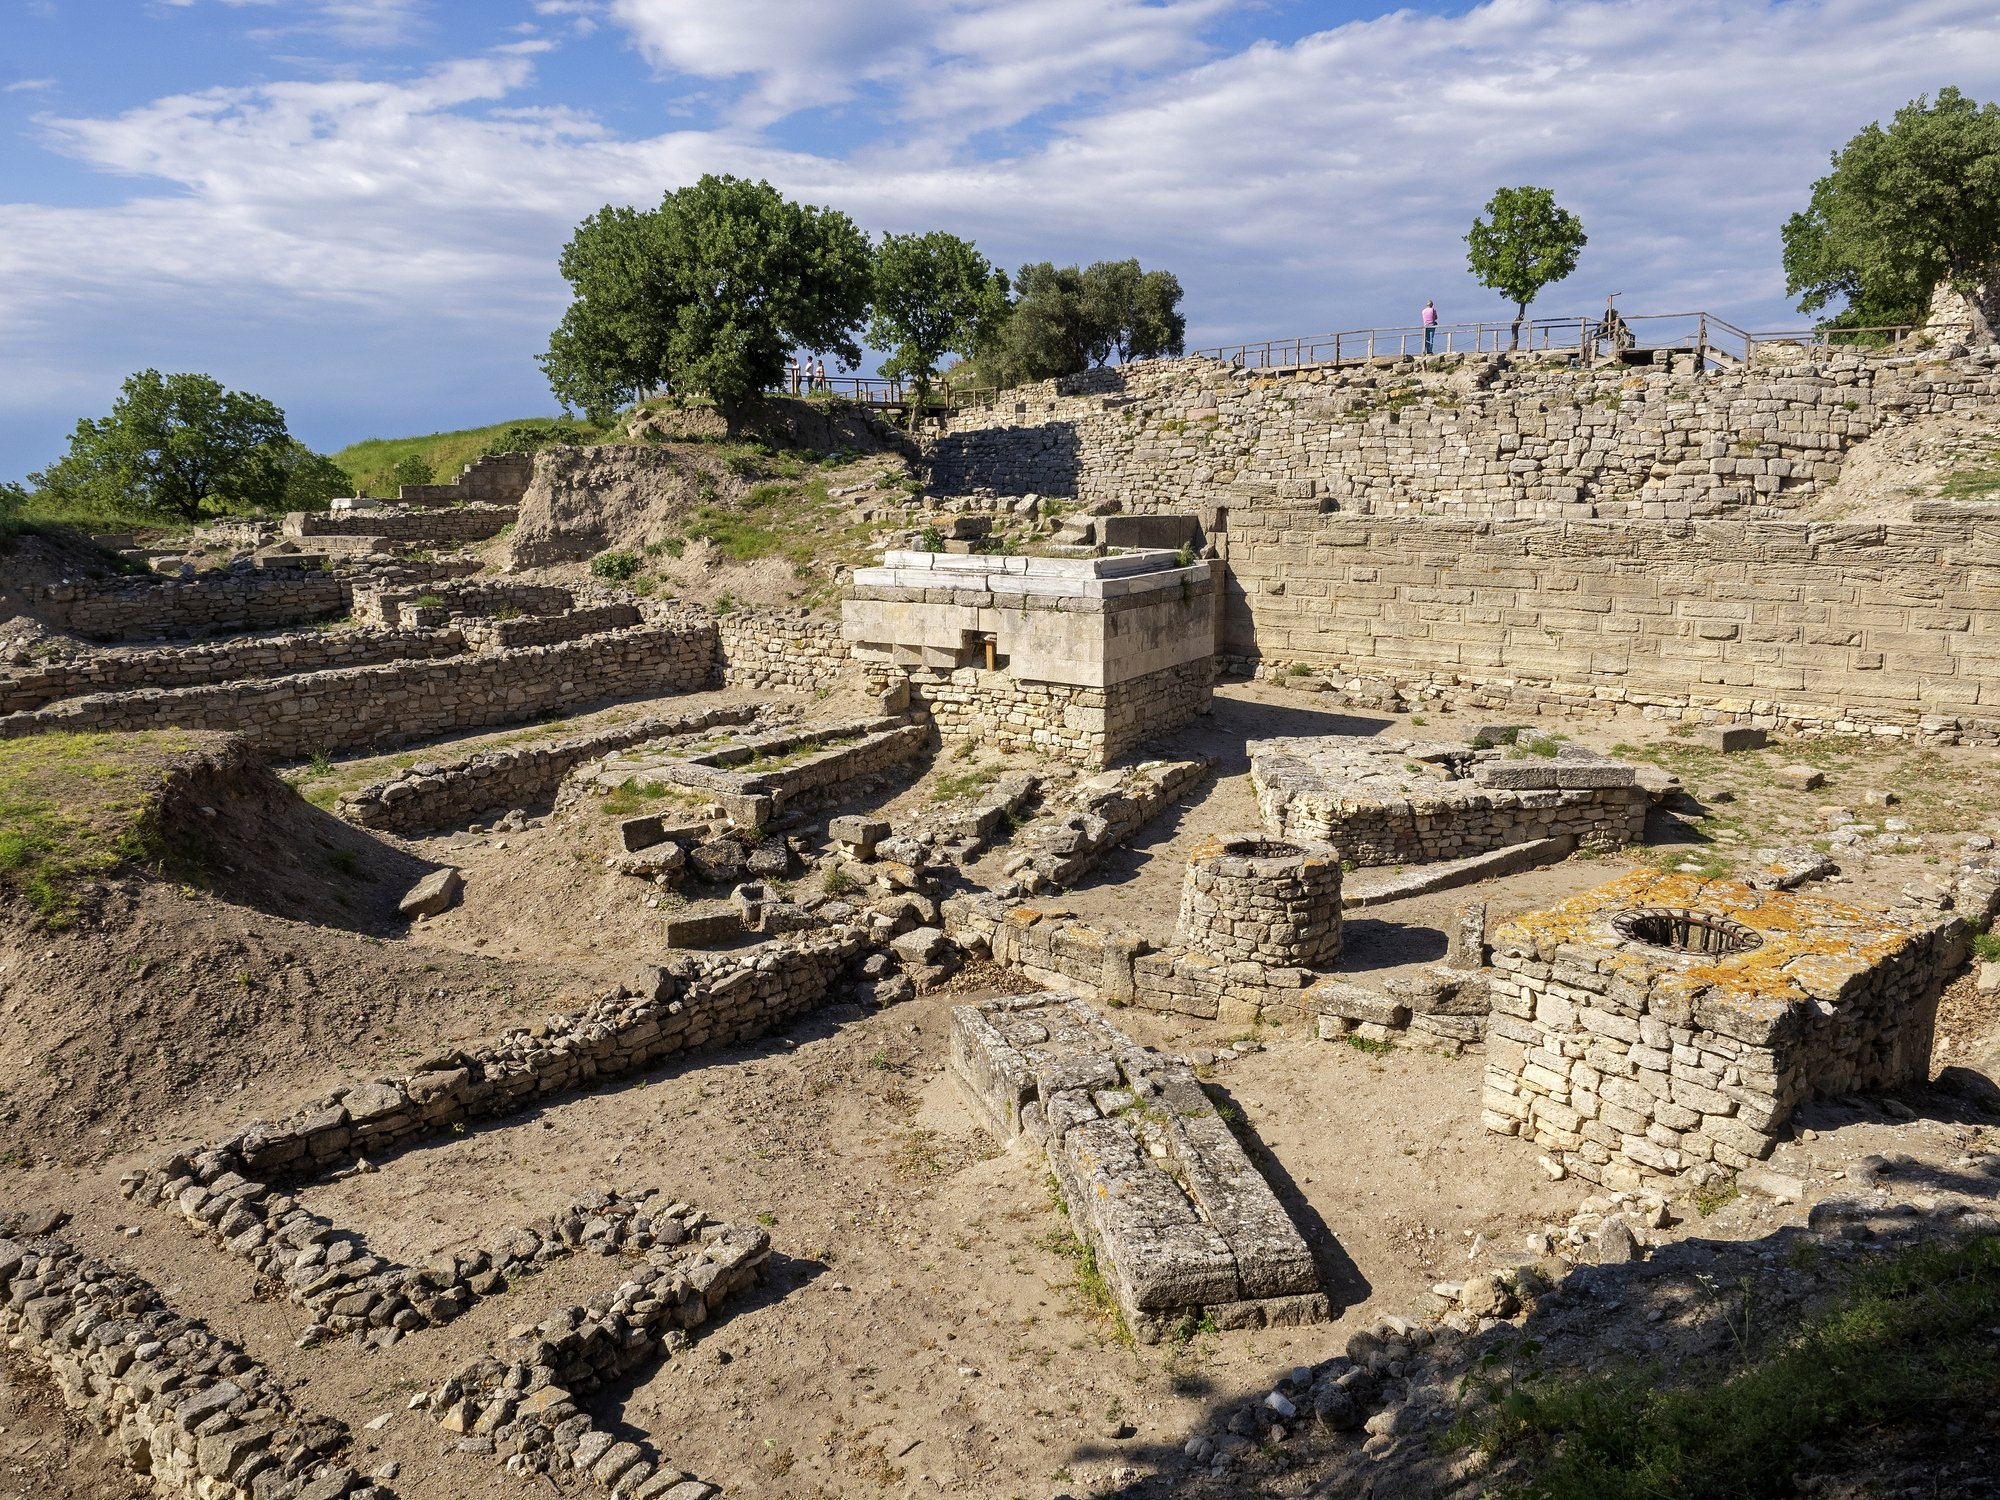 The ruins of the legendary city of Troy in Çanakkale province, western Turkey, May 6, 2017. (iStock Photo)